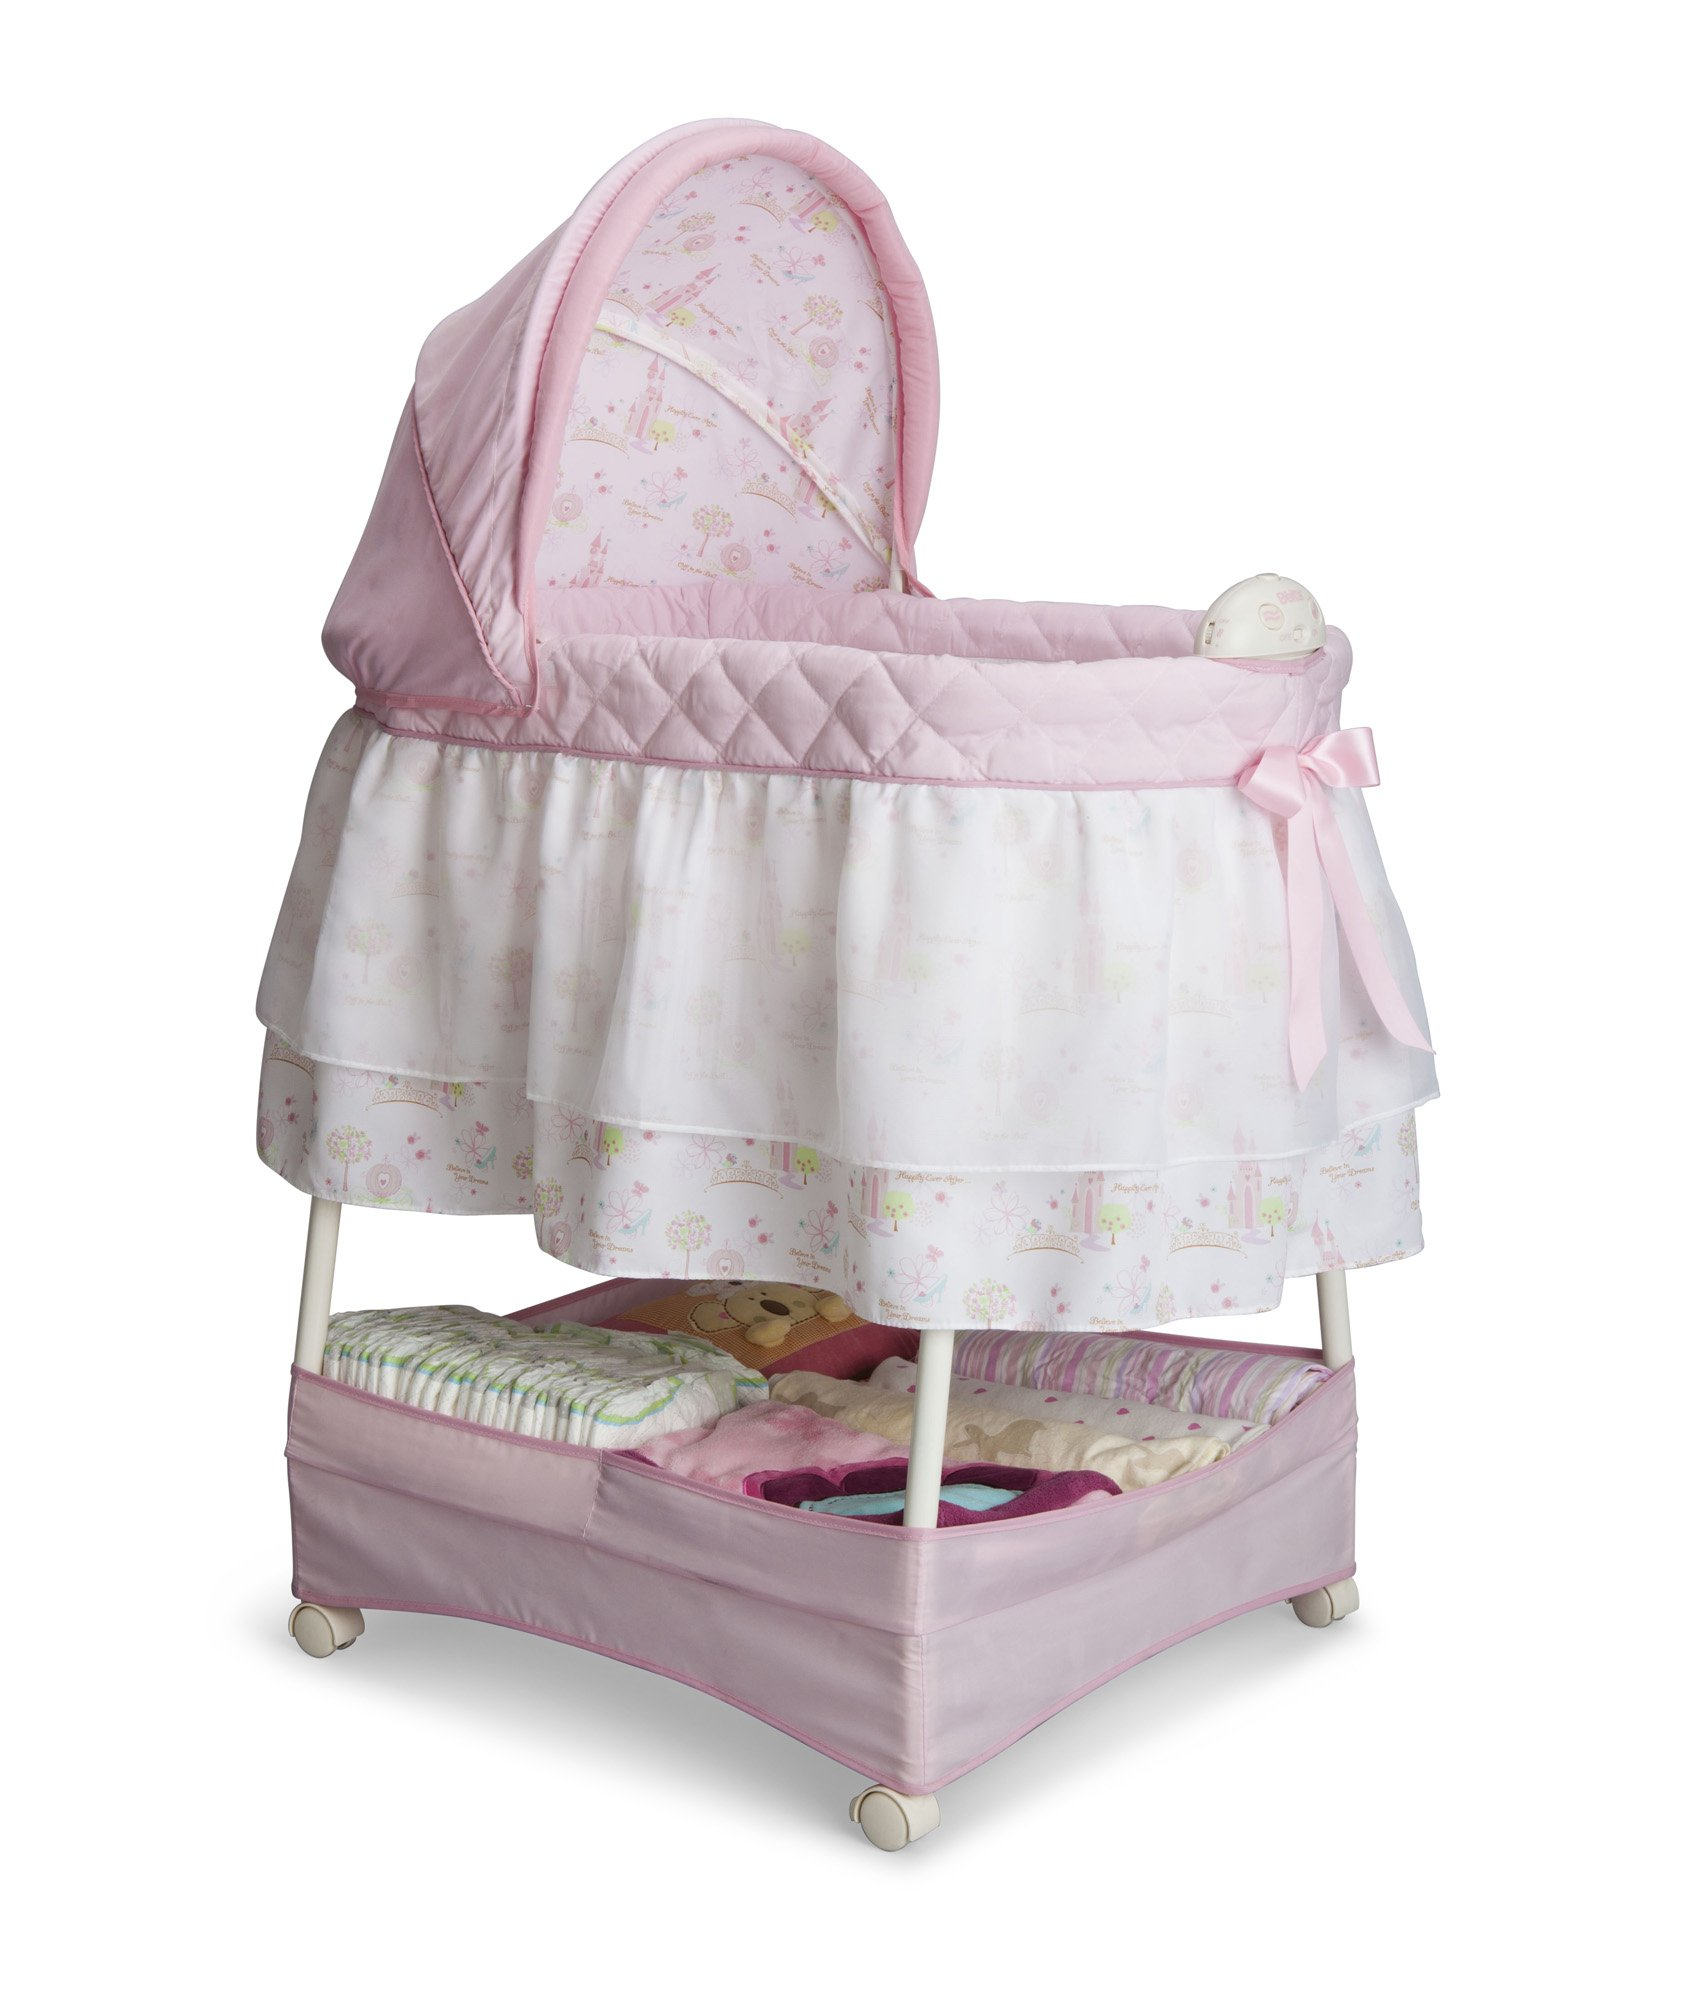 Delta Children Gliding Bassinet, Disney Princess by Delta Children